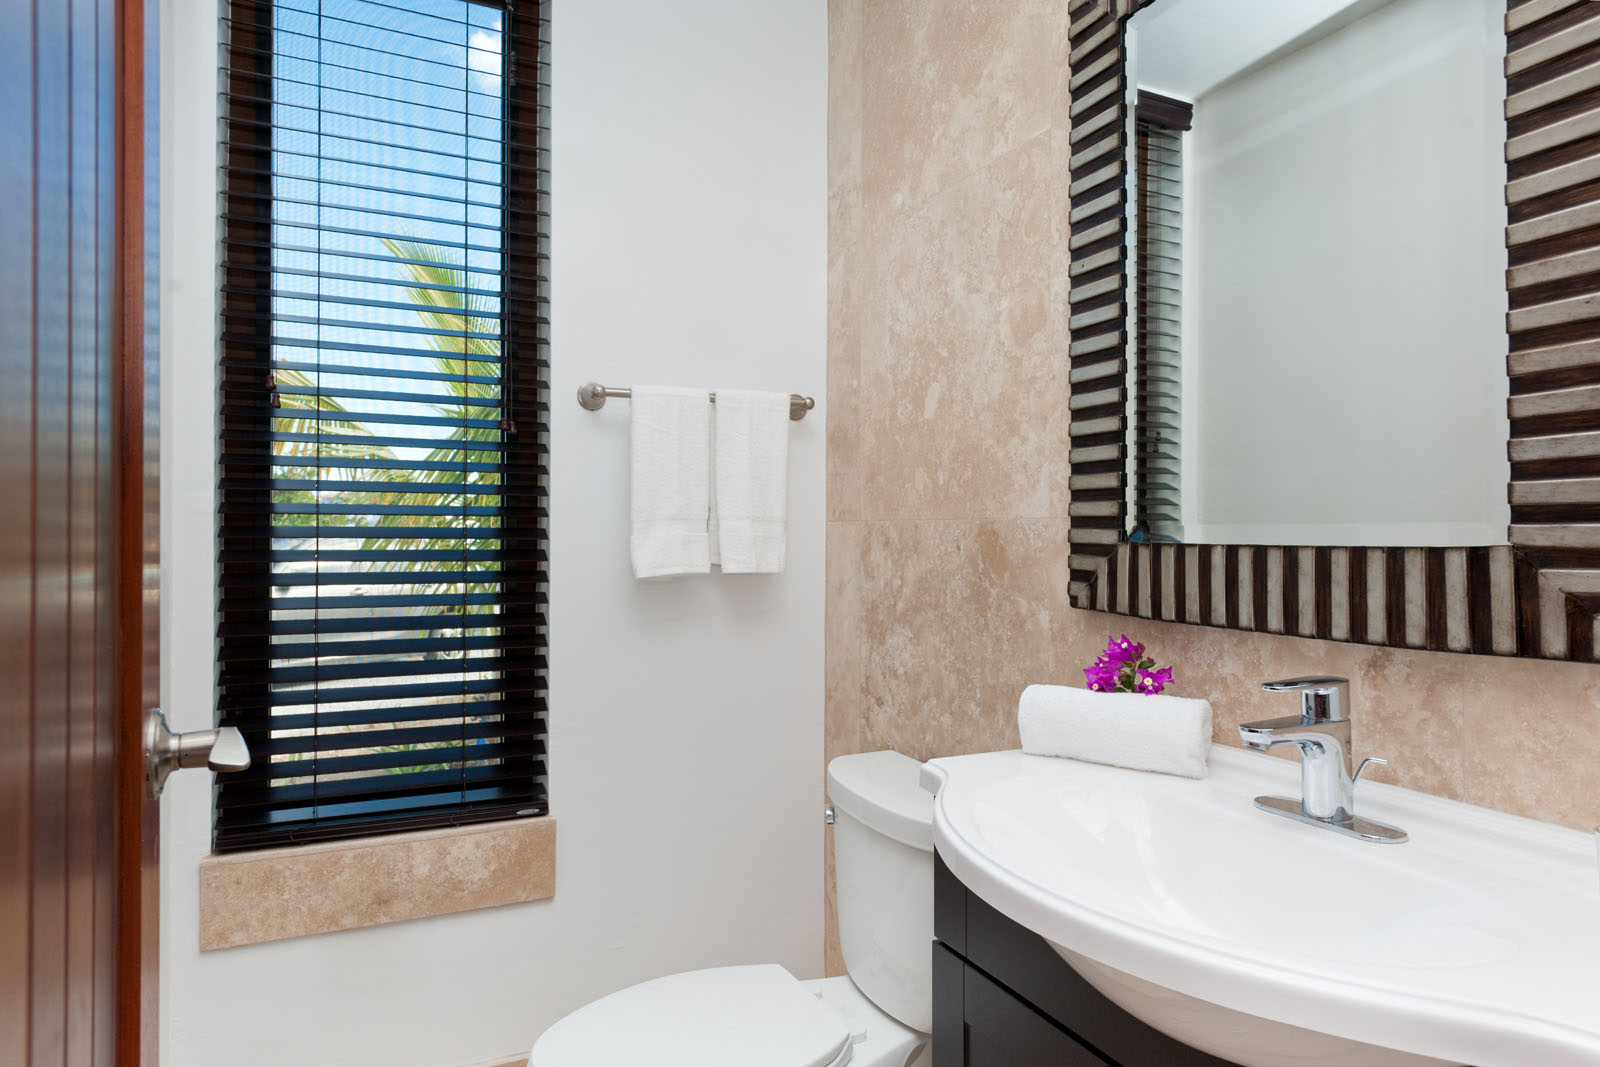 Attention has been paid to every luxurious detail at Water Edge Villa, Grace Bay Beach, Providenciales (Provo), Turks and Caicos Islands.